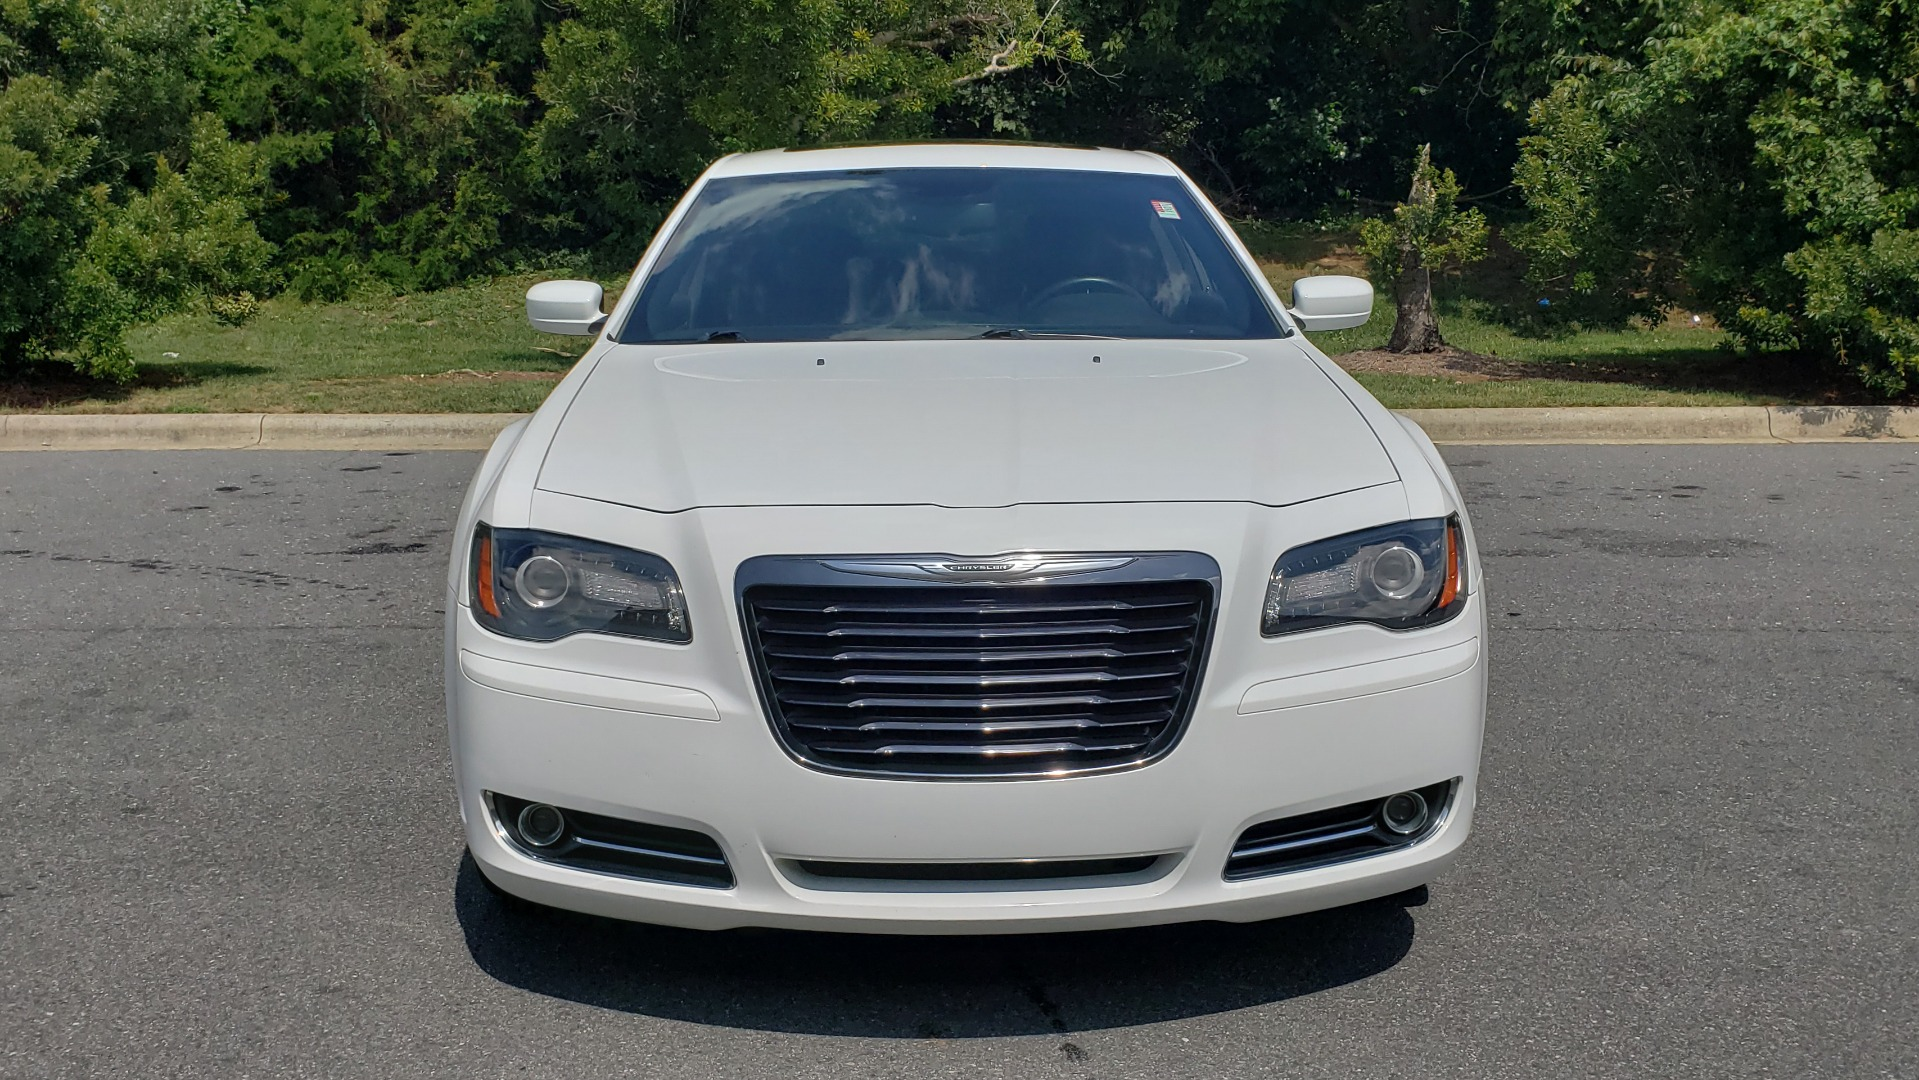 Used 2014 Chrysler 300 S / AWD / NAV / PANO-ROOF / HTD STS / BEATS SOUND / REARVIEW for sale Sold at Formula Imports in Charlotte NC 28227 18